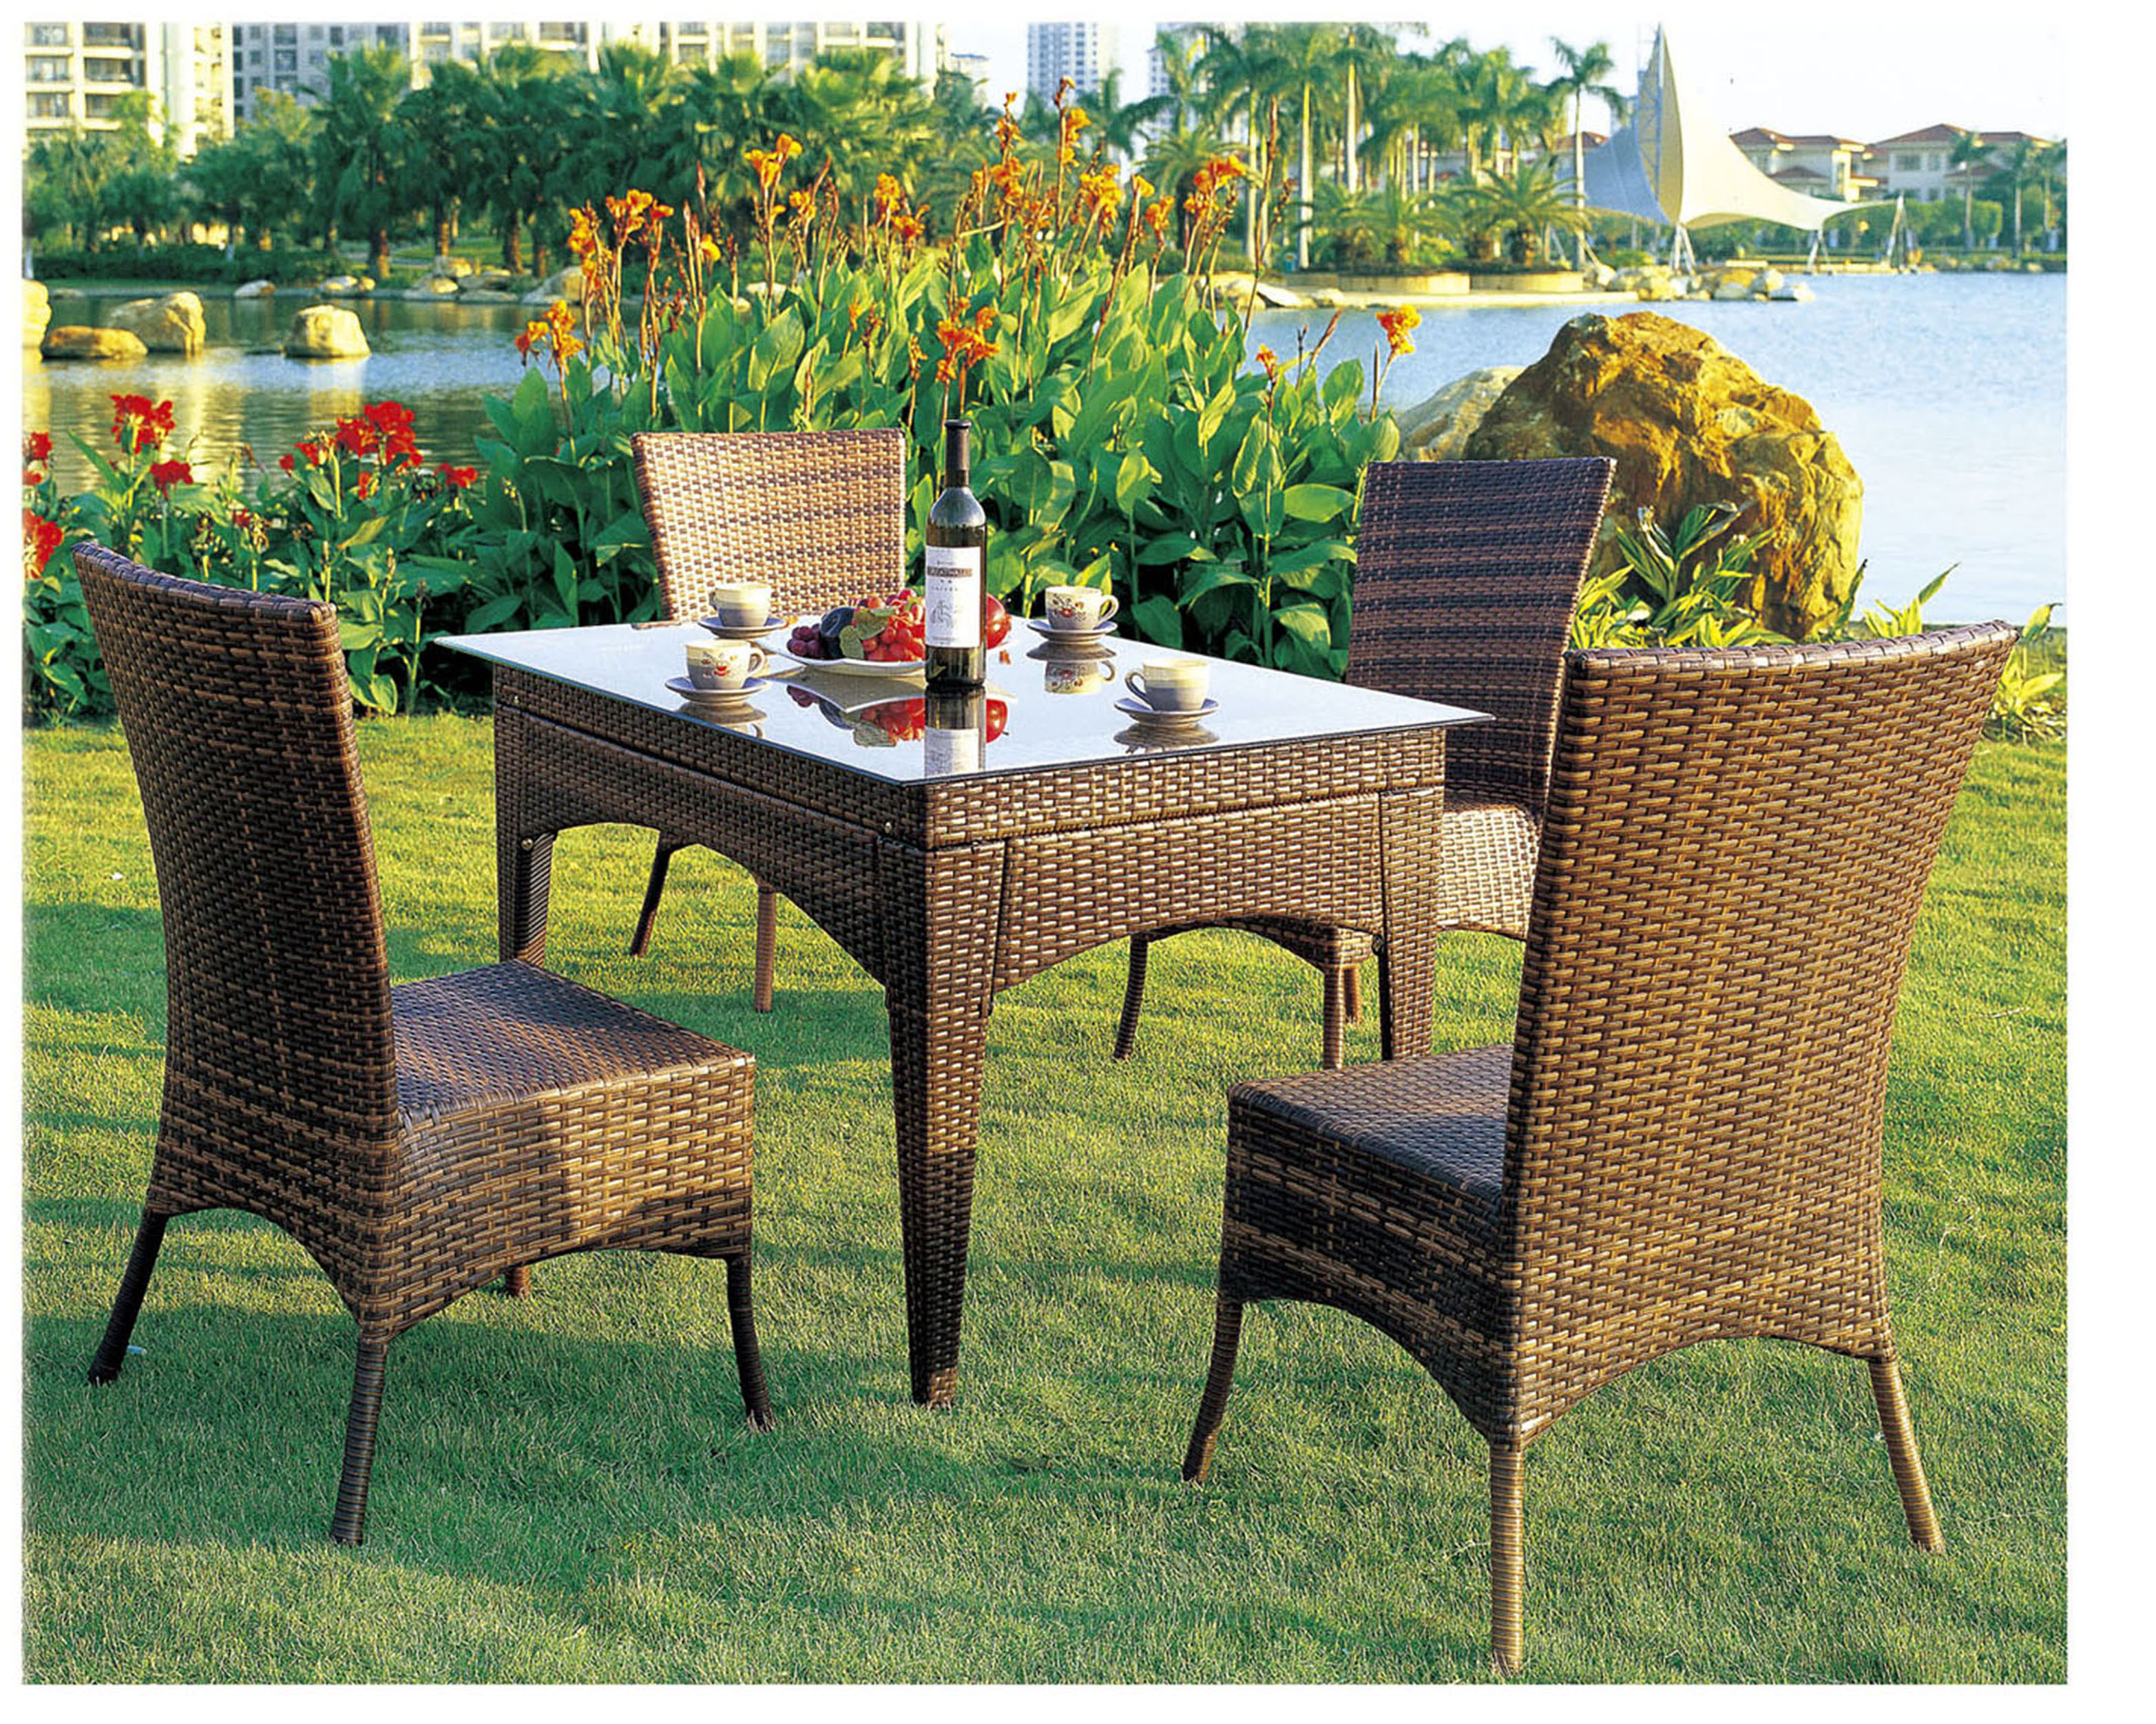 Outdoor Garden Place Patio Furniture